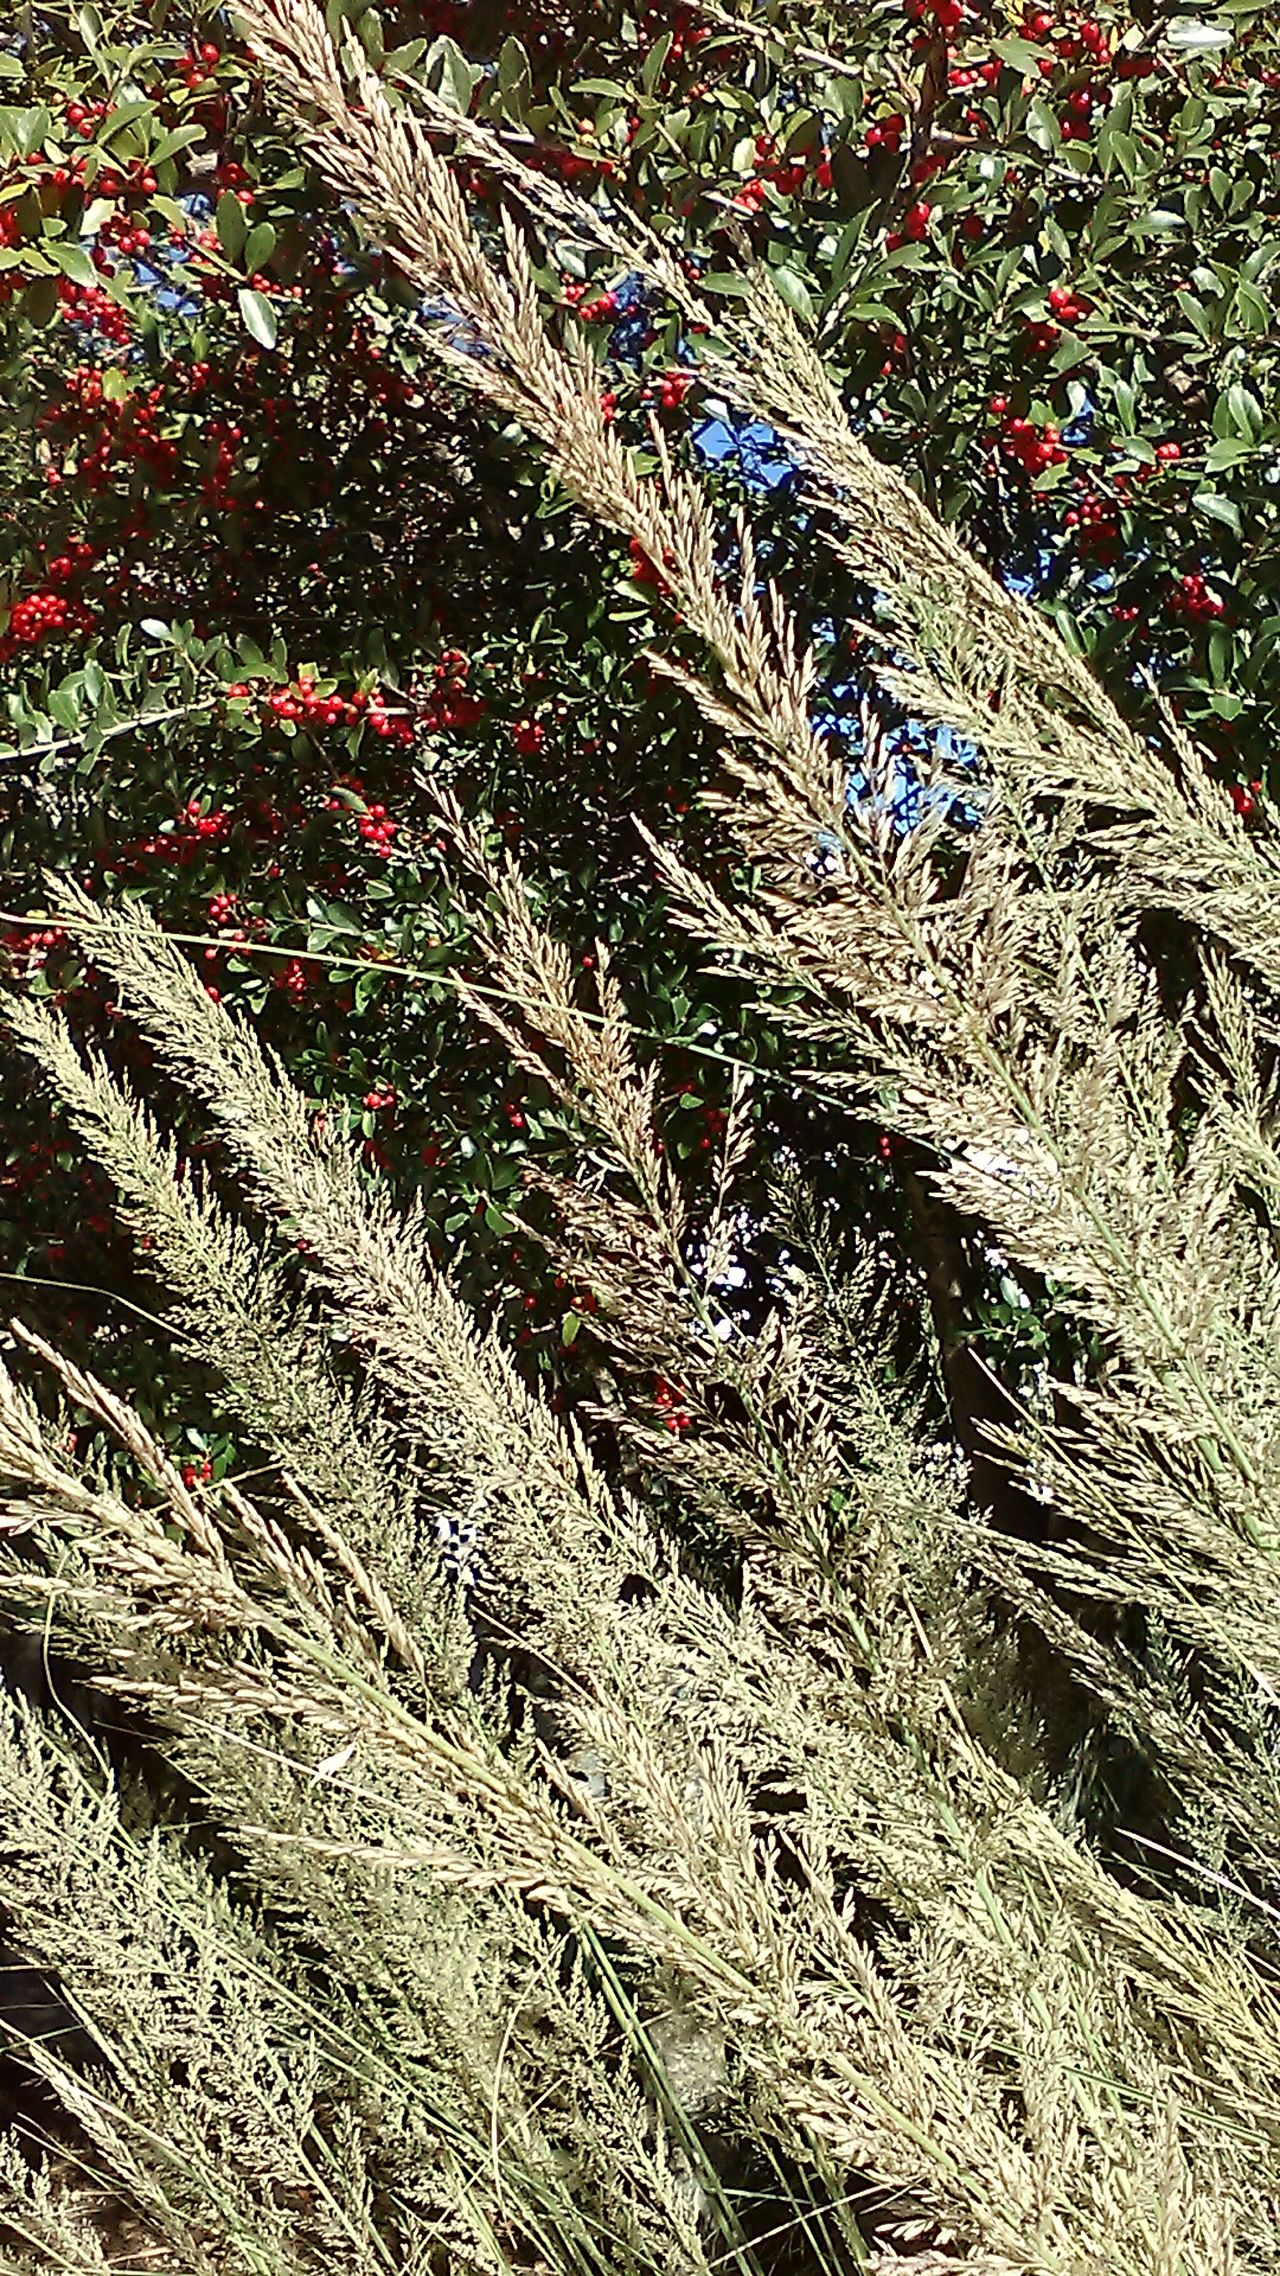 Trees And Bushes Green Leaves Red Berries Feathered Beauty No People Outdoors Hiking Taking Photos Nature Nature Photography Outdoor Photography Nature And Beauty No Edit/no Filter Photography